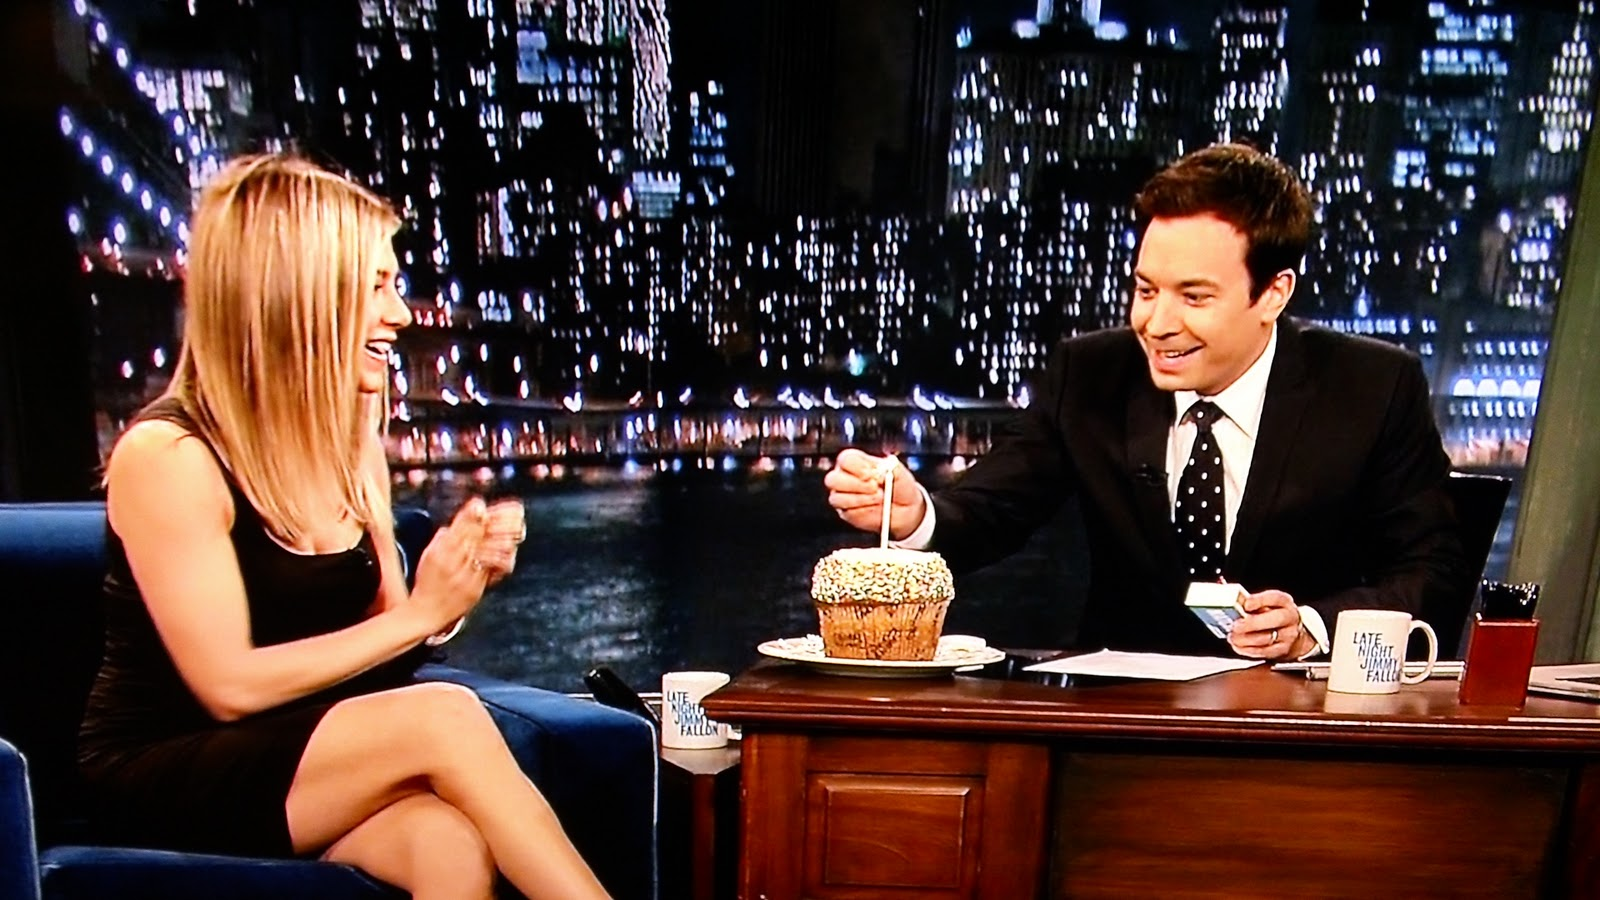 jennifer aniston turned 42 and jimmy fallon helped her celebrate her